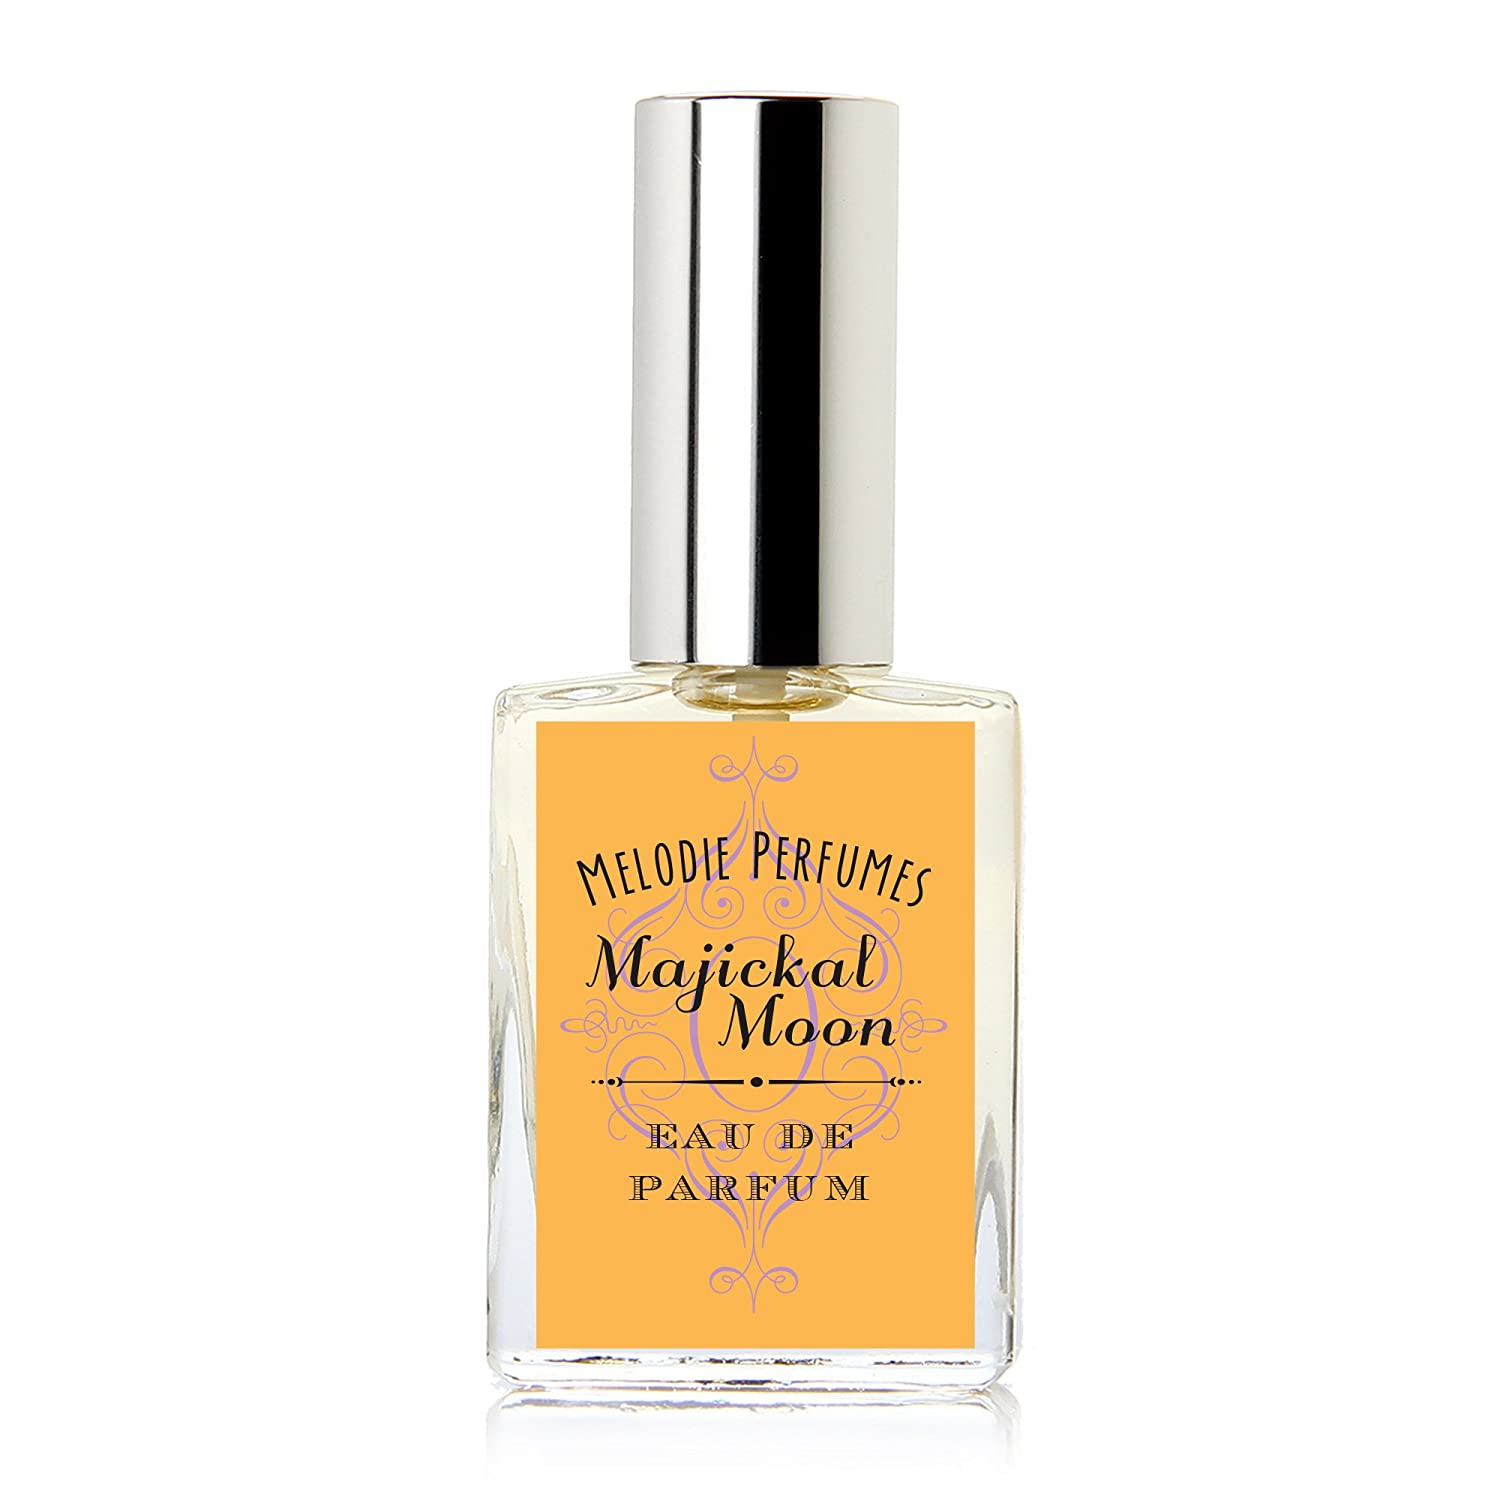 Majickal Moon Pumpkin Lavender perfume spray by Melodie Perfumes.Cast a spell - men love this on women! themefragrance